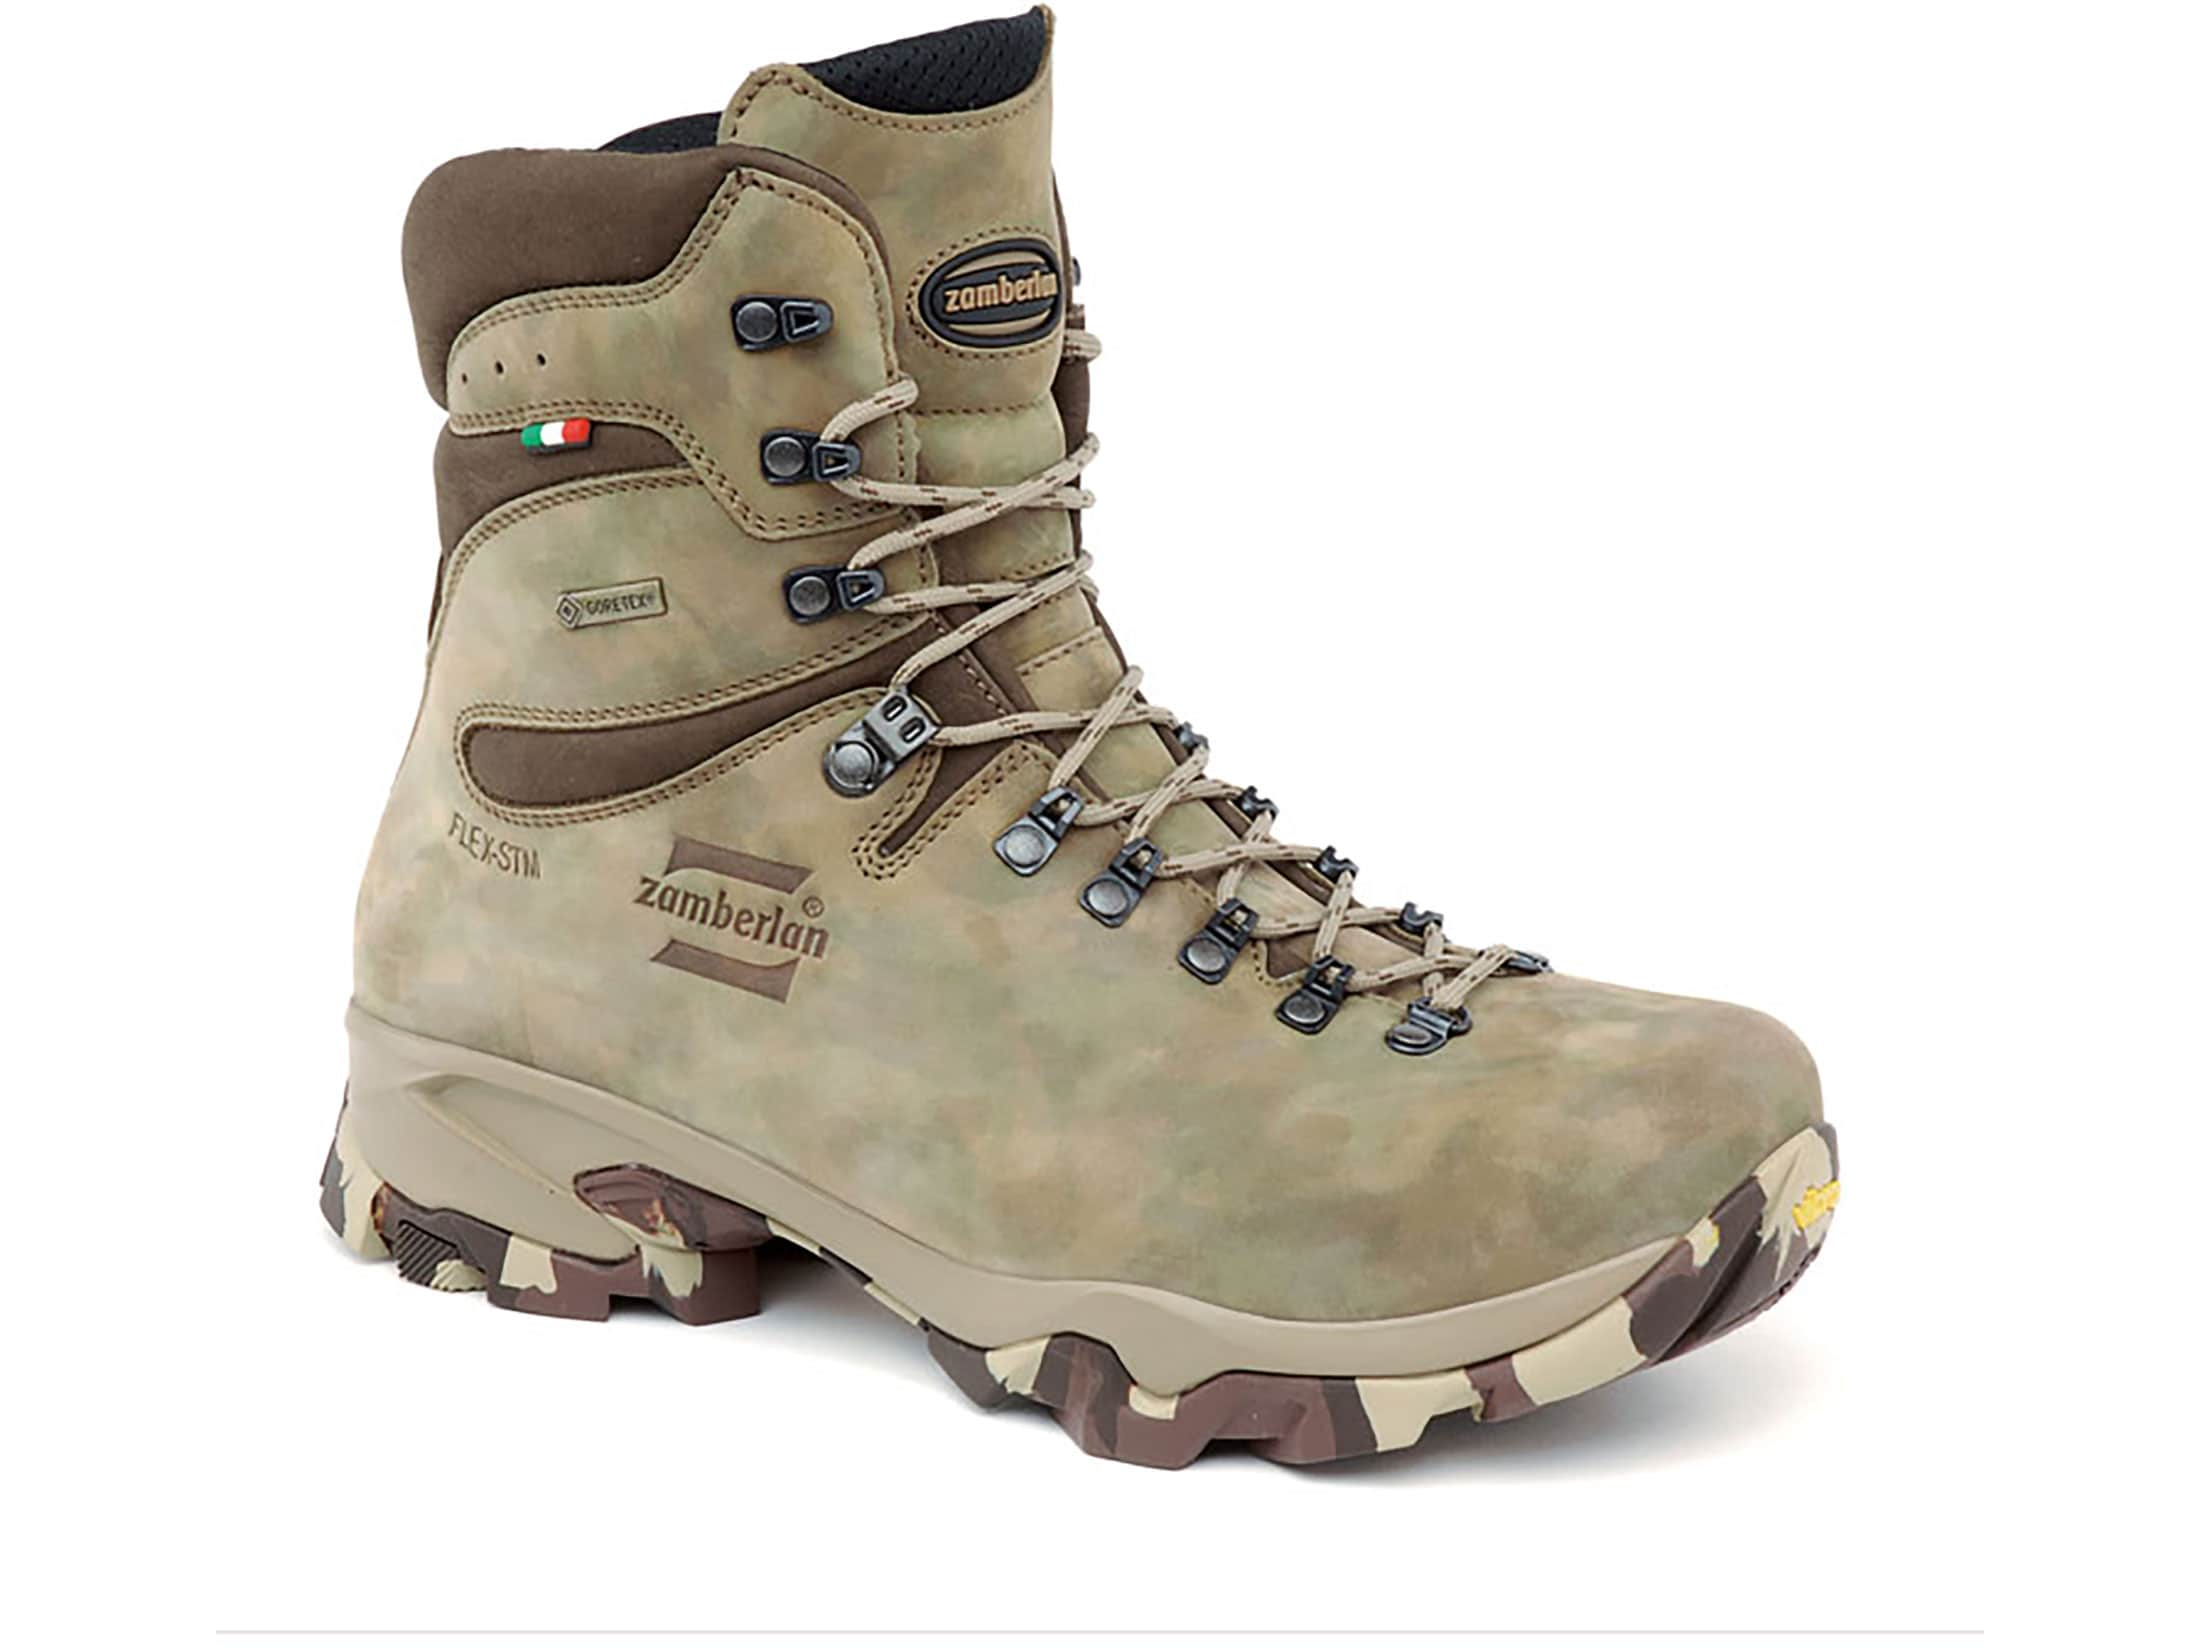 67c8d30c413 Zamberlan Lynx Mid GTX 9 GORE-TEX Hunting Boots Leather Camouflage